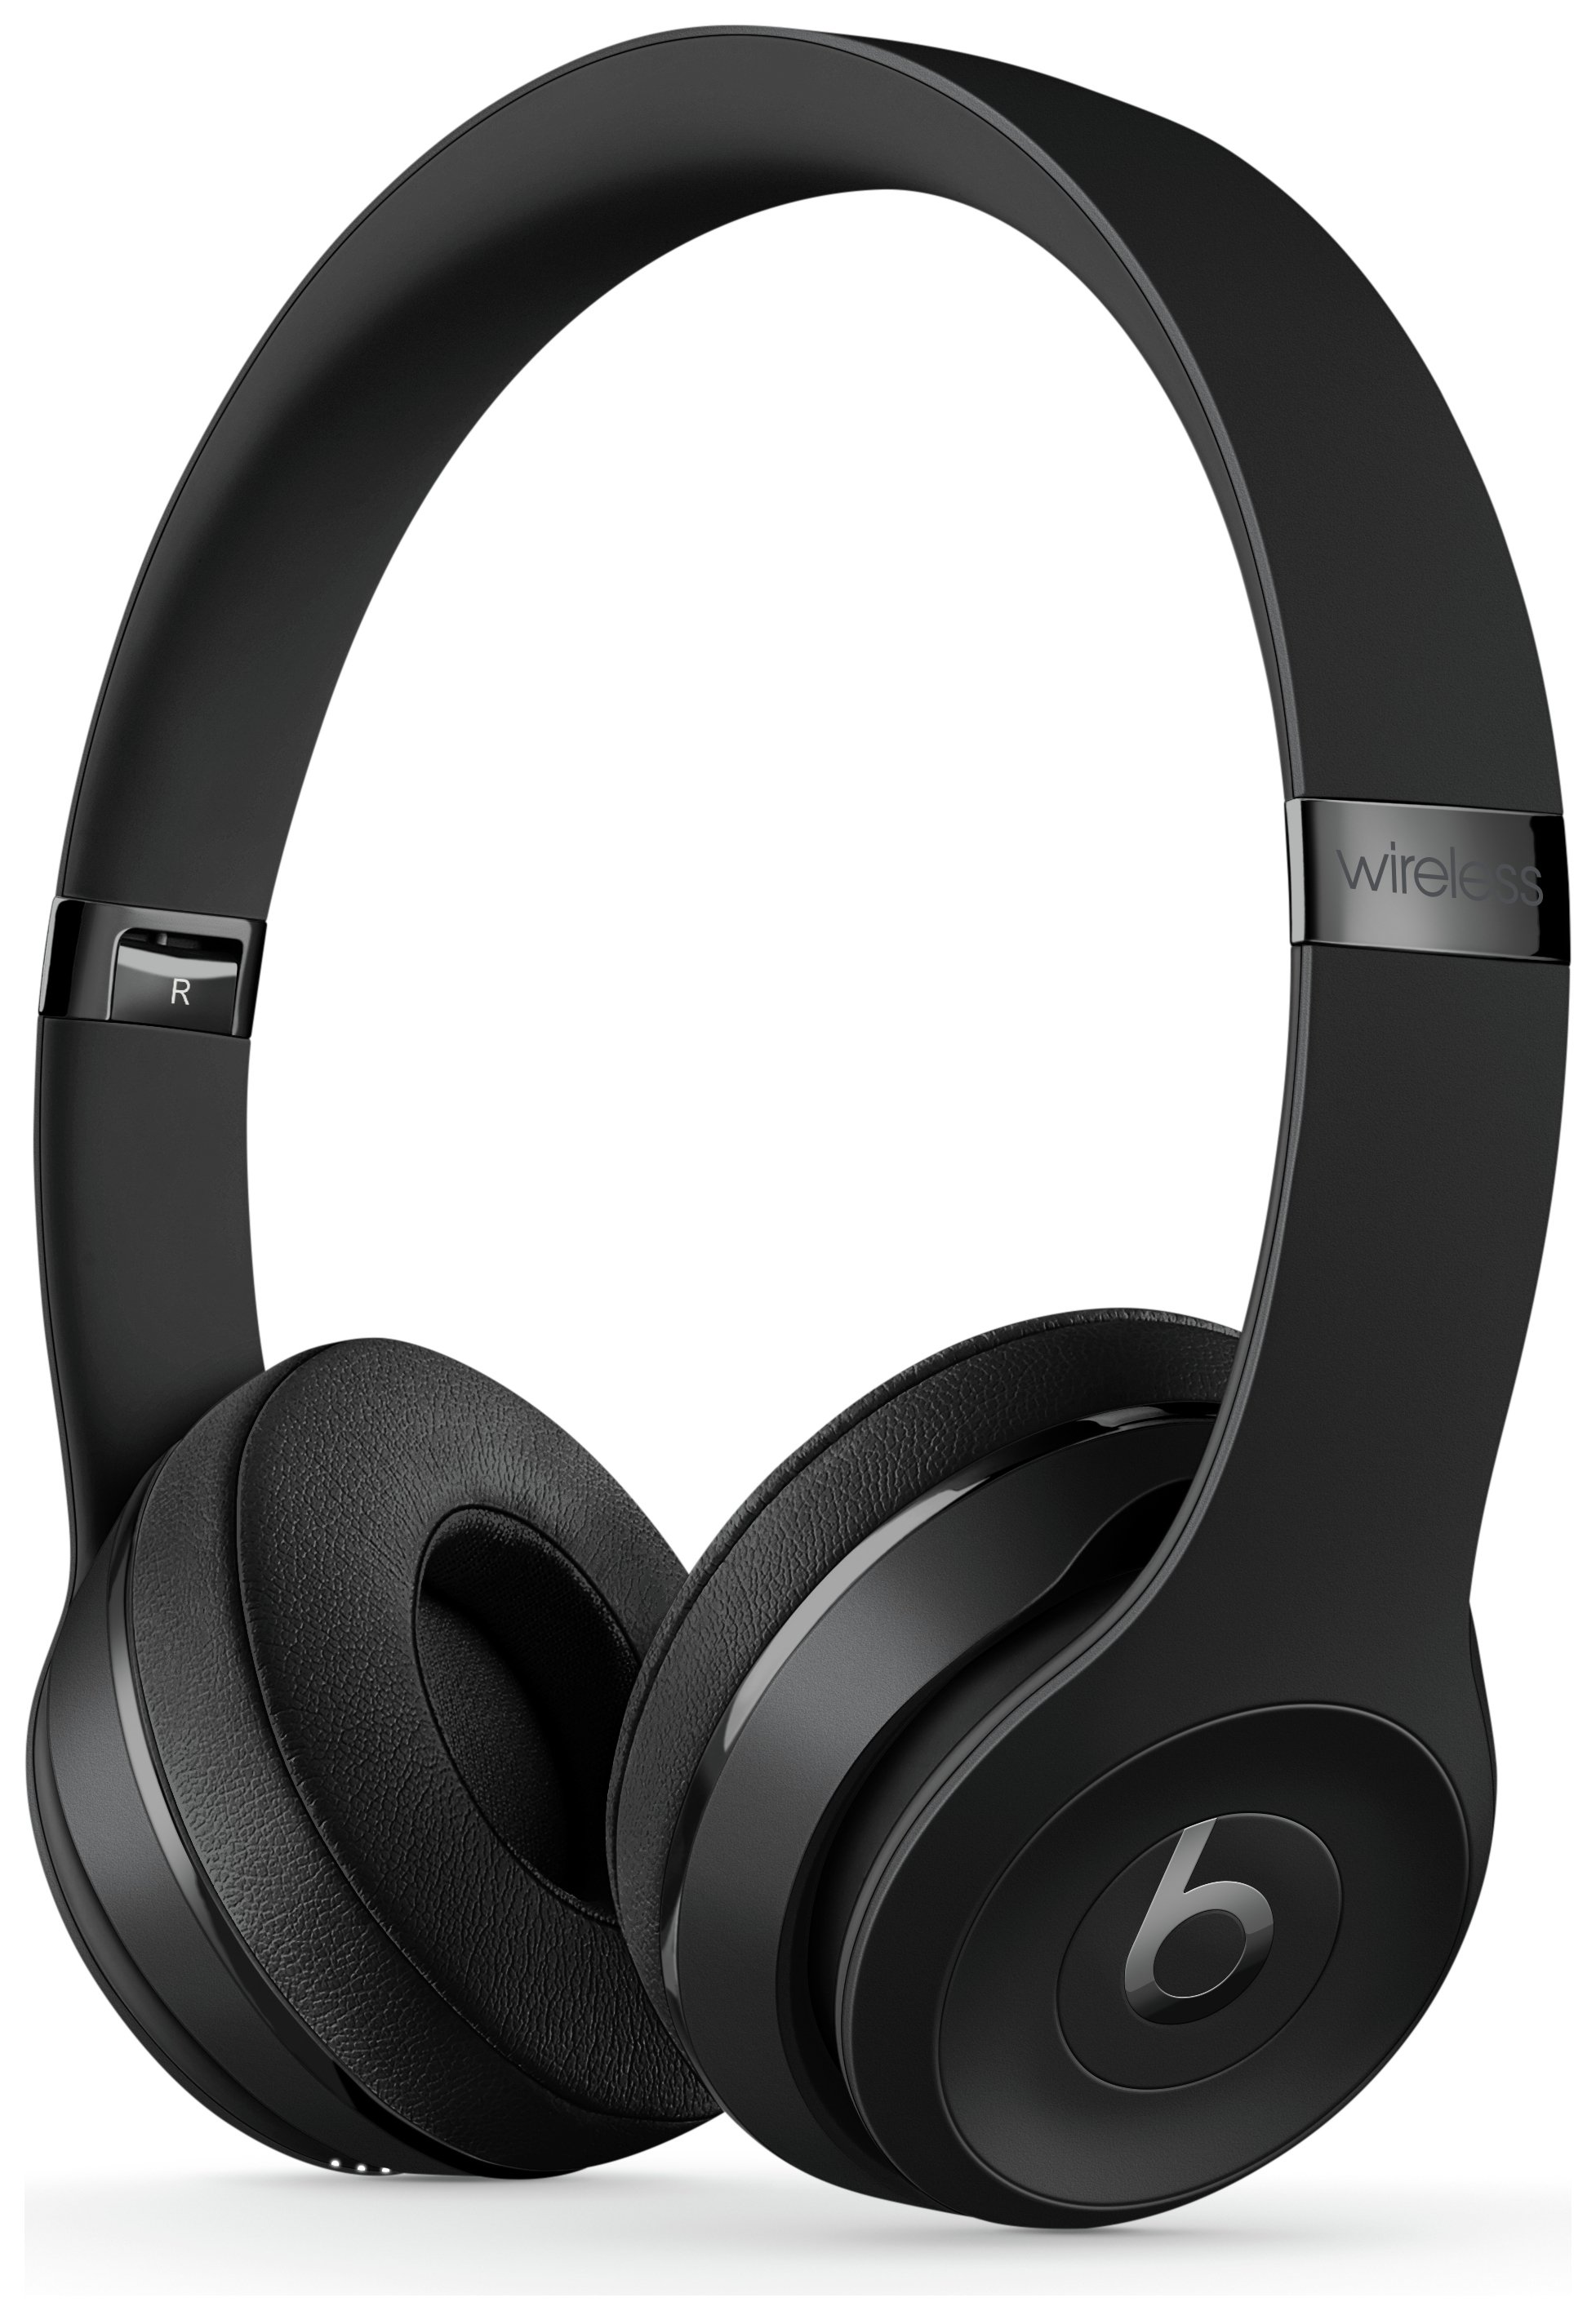 Compare retail prices of Beats by Dre Solo3 On Ear Wireless Headphones White Gold to get the best deal online